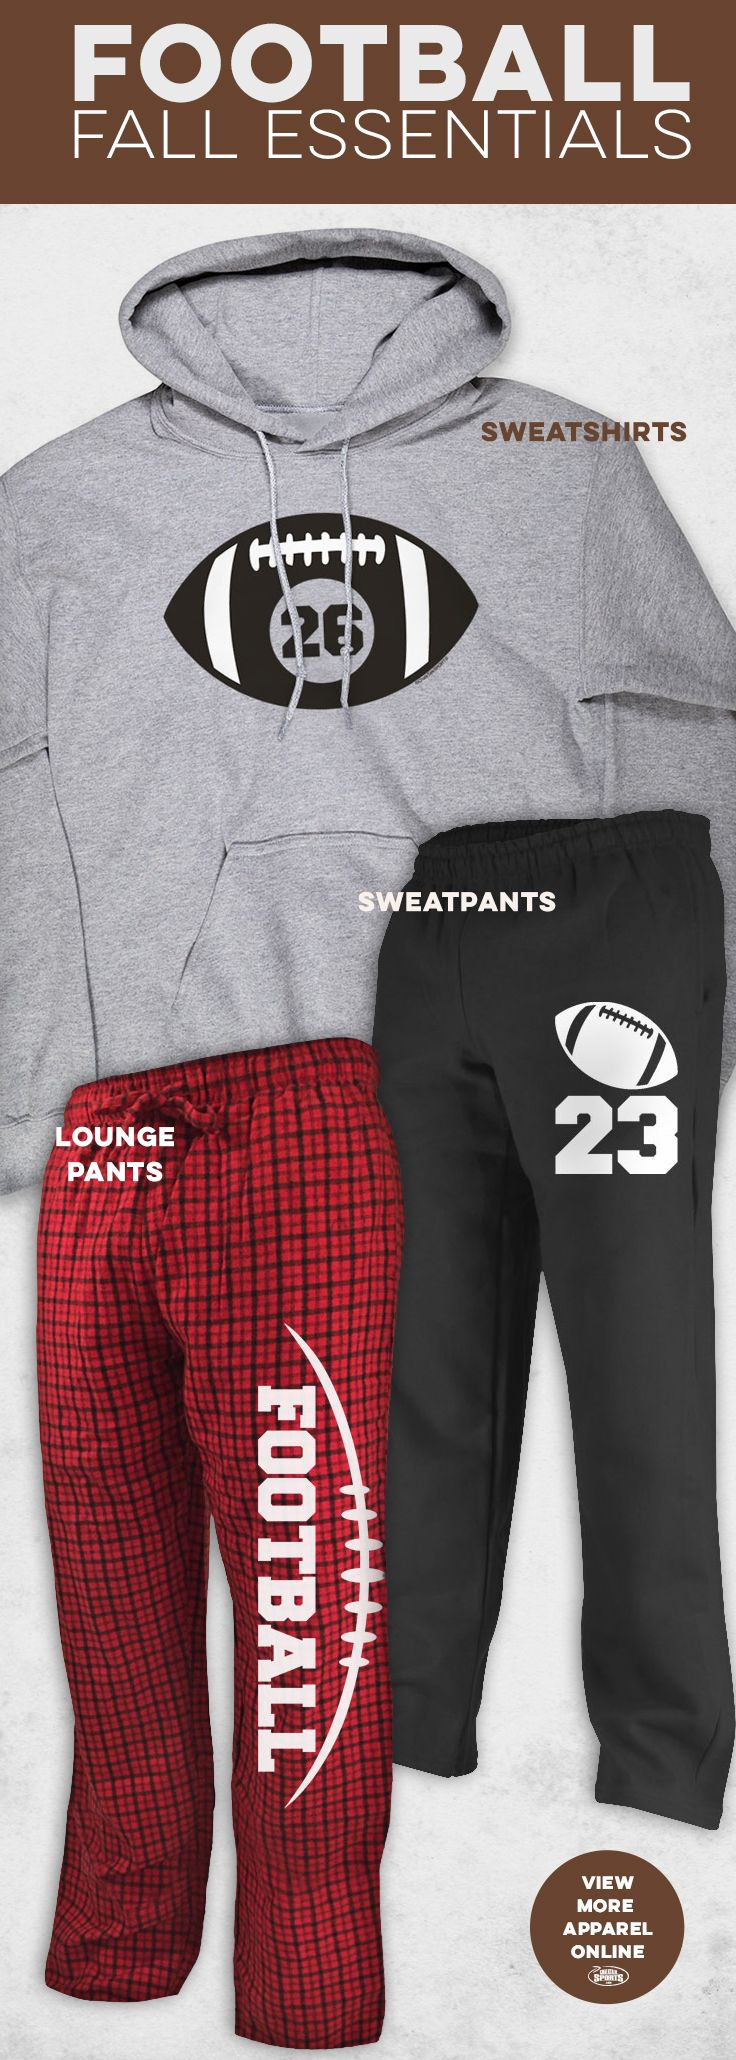 Football season is here. Those weeknight/ Saturday morning games can get a little chilly. Stay warm with these fall essentials - like sweatshirts, sweatpants, lounge pants and more.